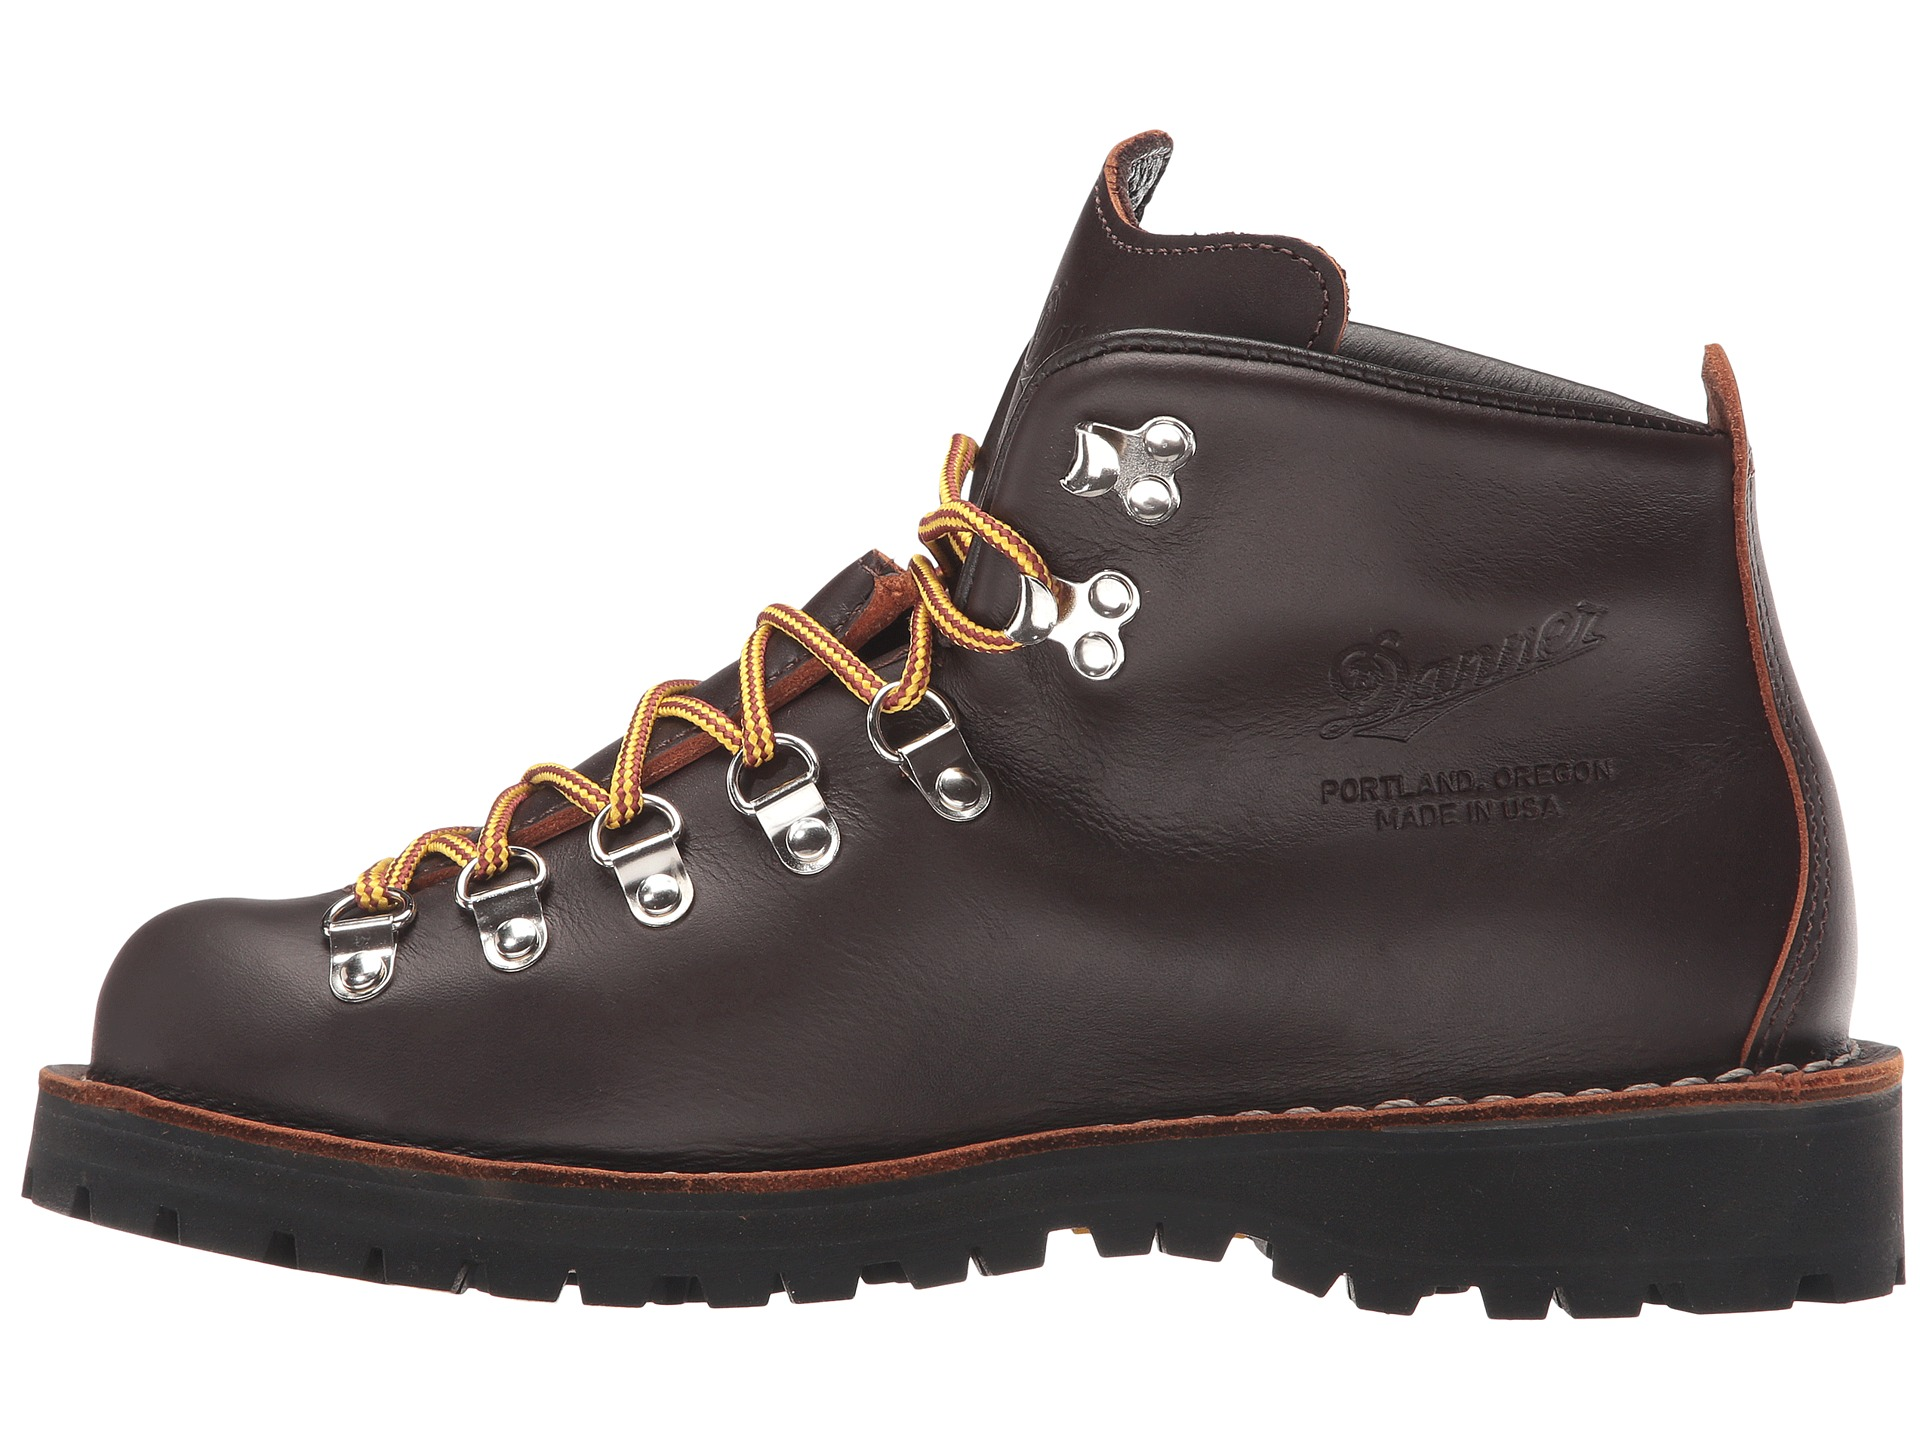 Danner Mountain Light - Zappos.com Free Shipping BOTH Ways